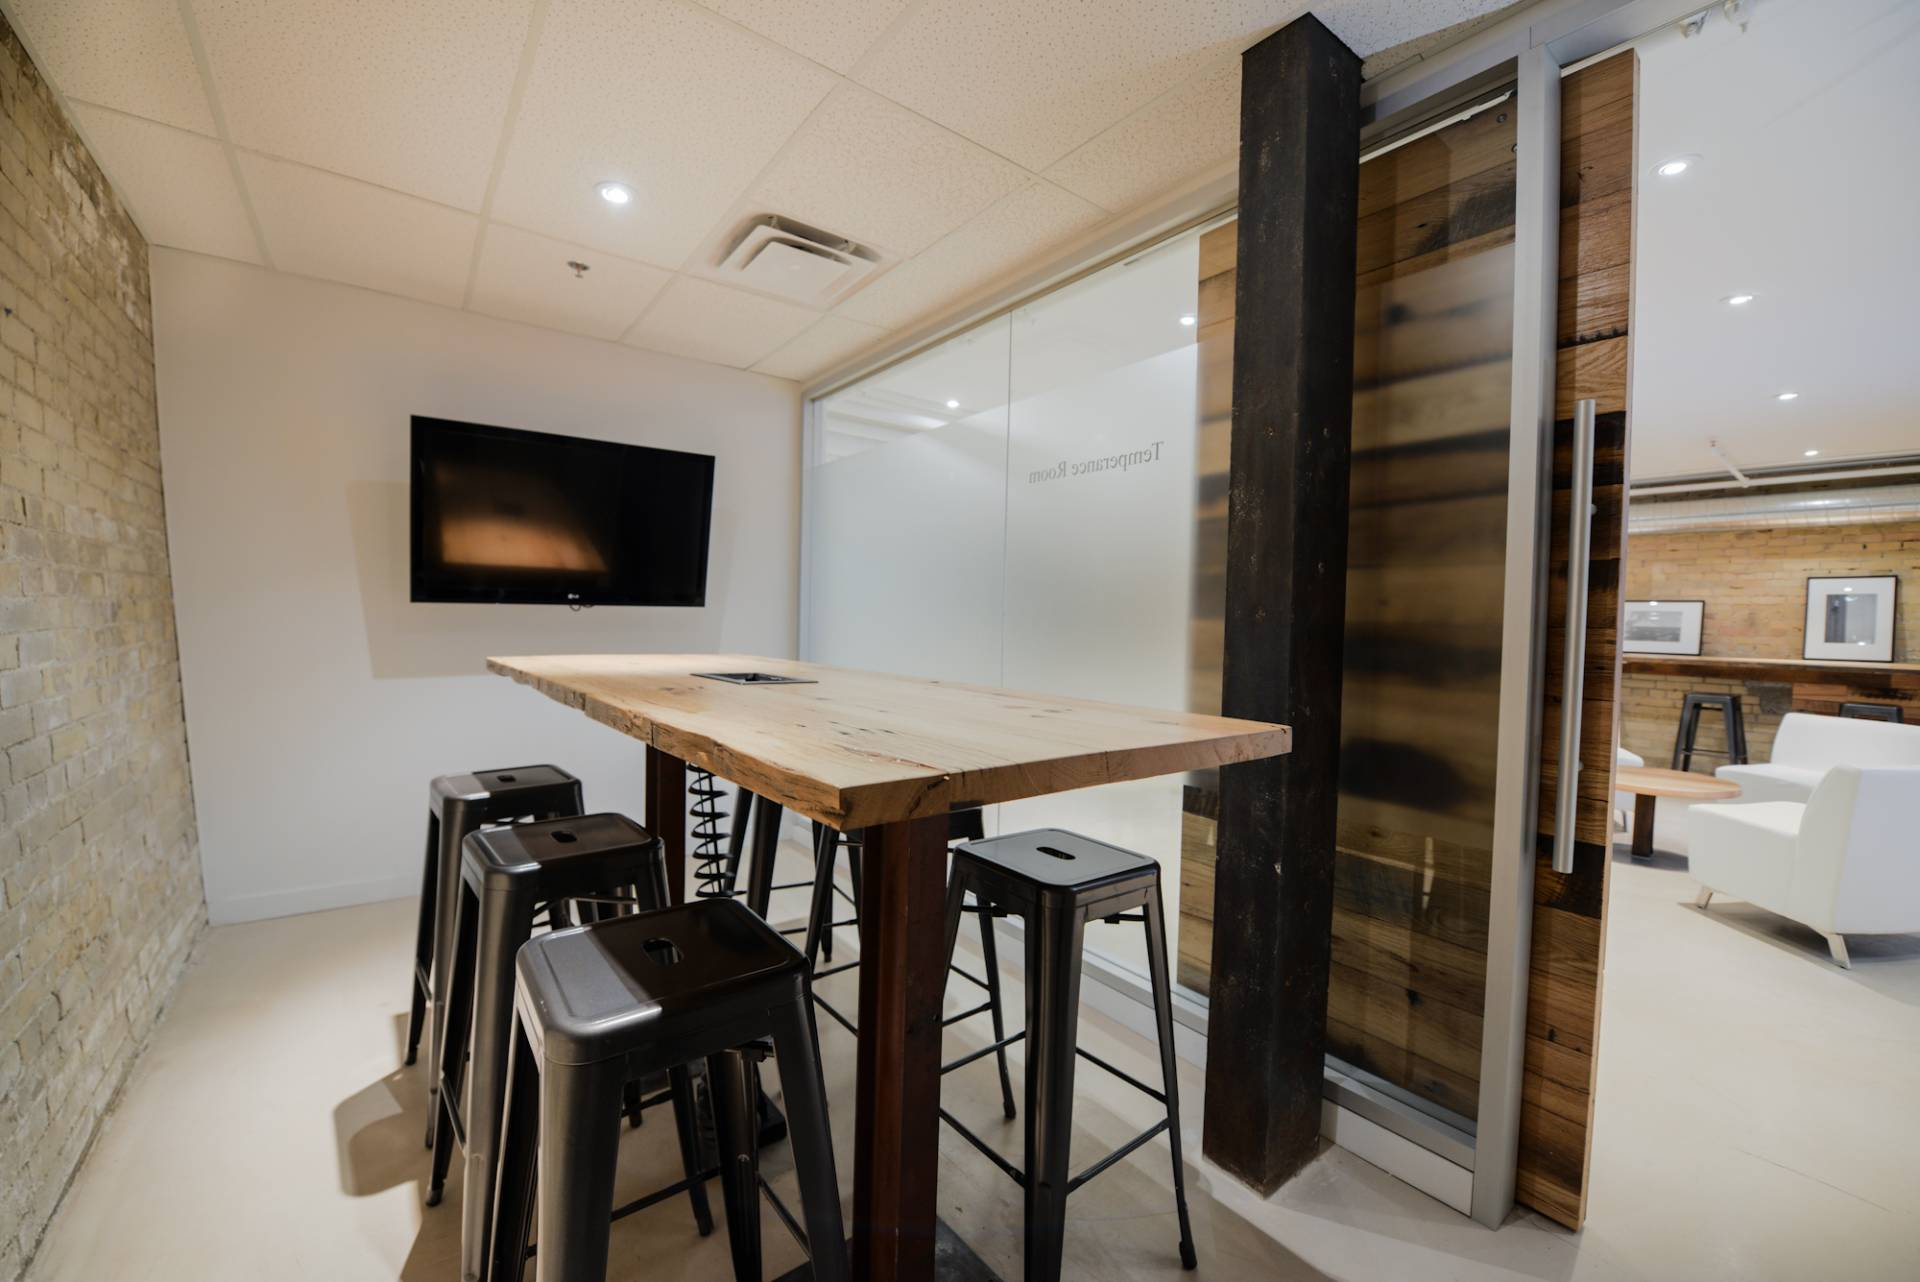 Wooden Bar Table with Stools in meeting room